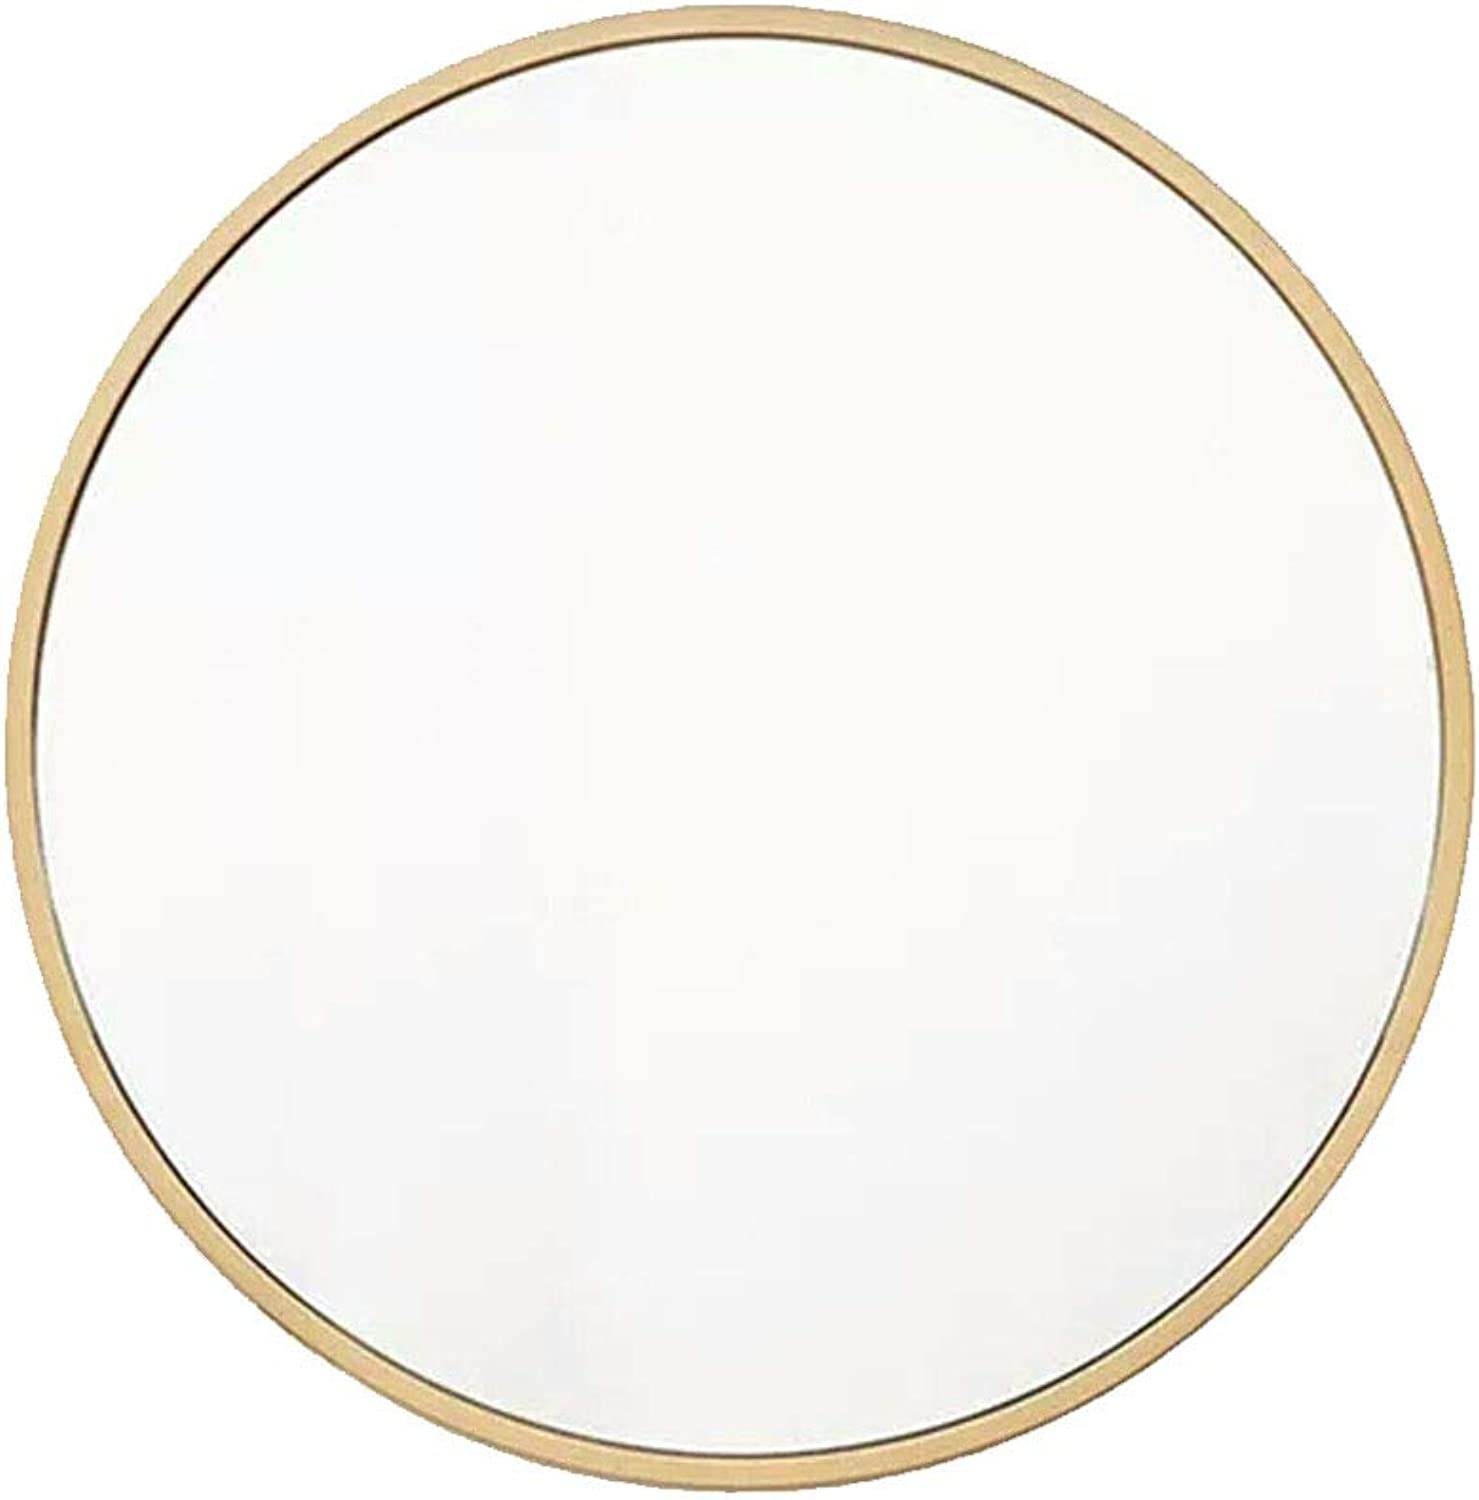 Round Wall-Mounted Bathroom Mirror   Makeup Shaving Mirror   gold Metal Frame Wall Mirror   30-70cm Available